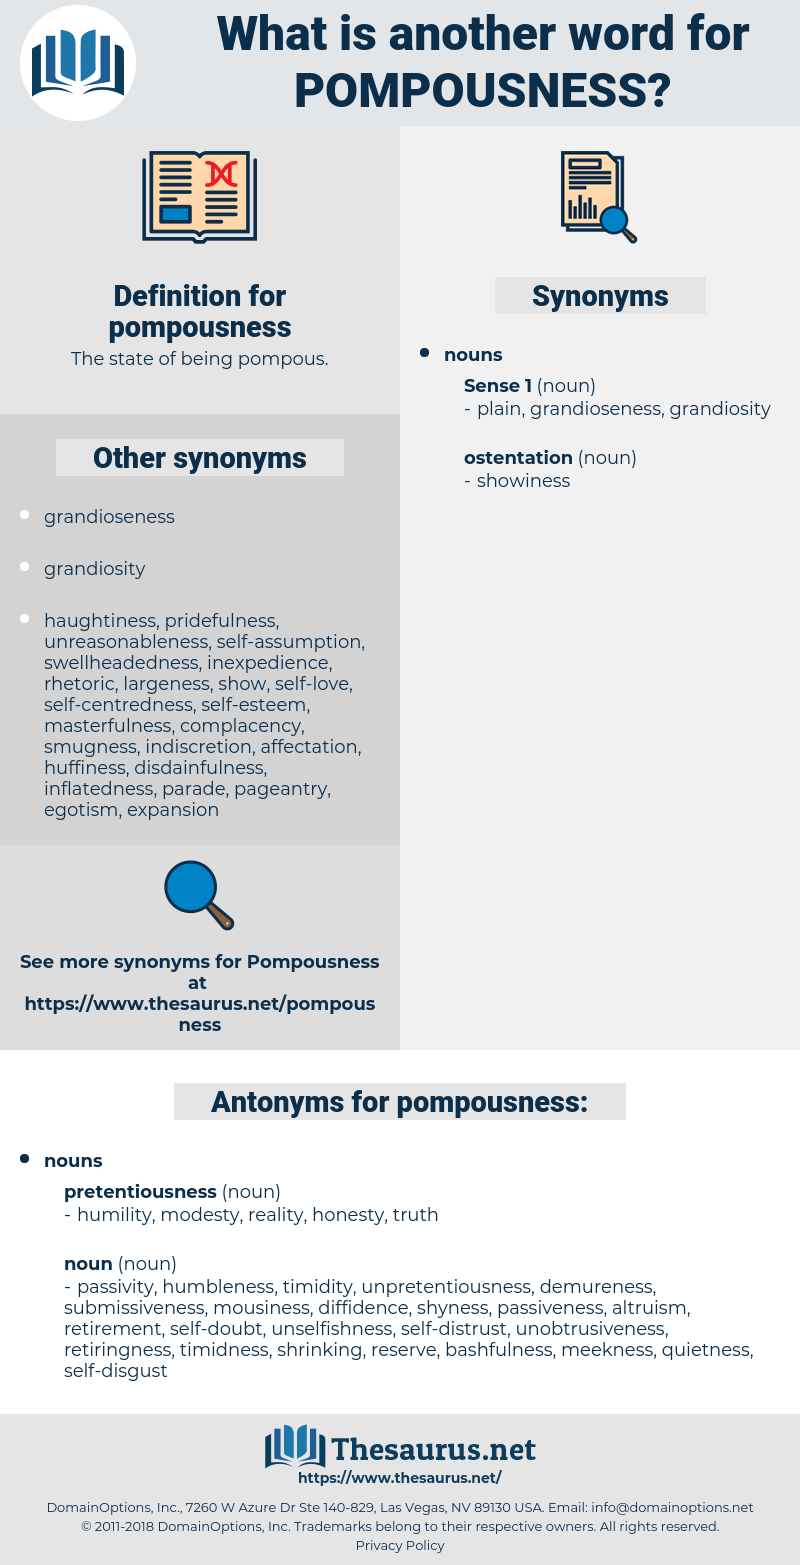 pompousness, synonym pompousness, another word for pompousness, words like pompousness, thesaurus pompousness